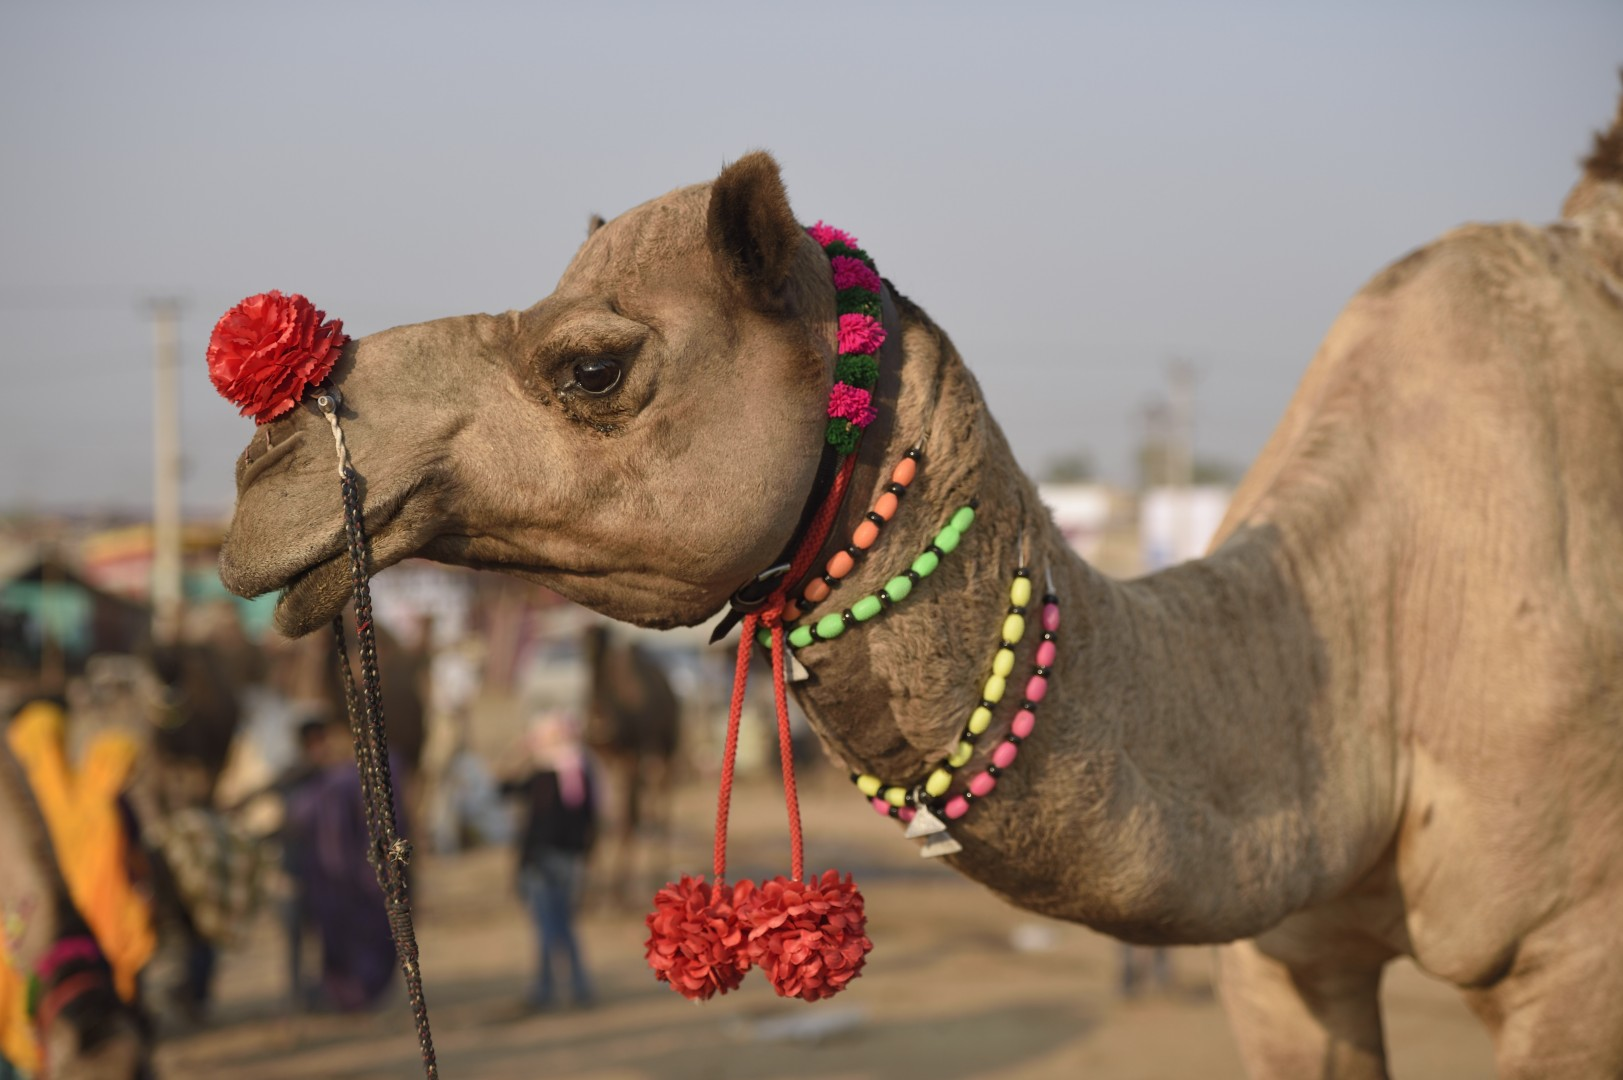 happy bling-bling 2016 from india